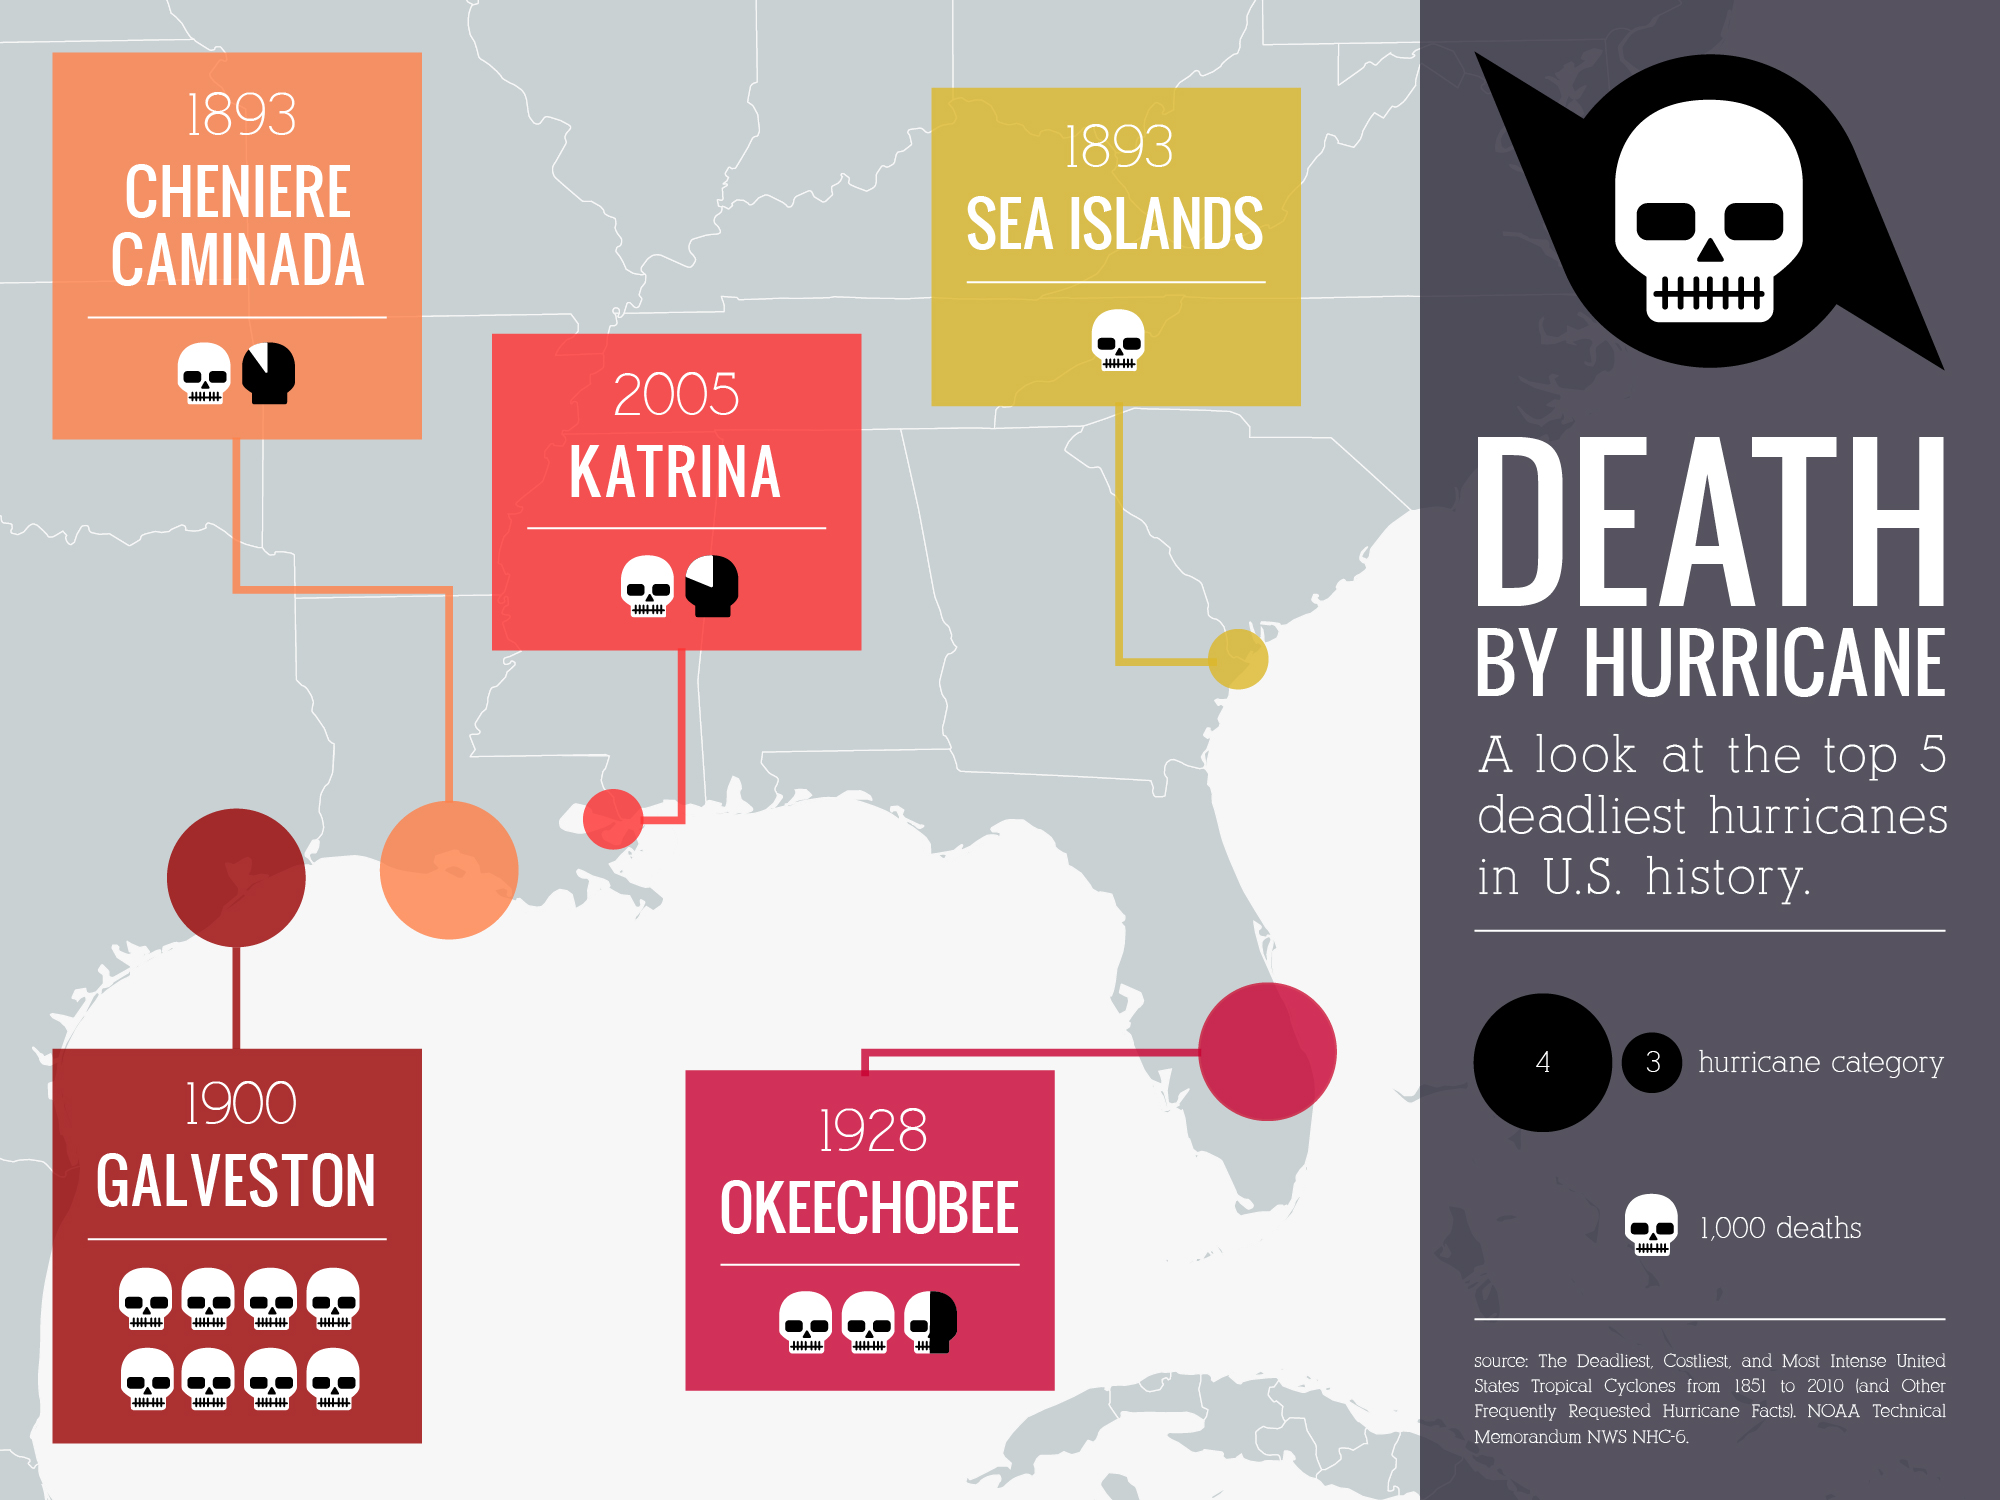 Death by Hurricane - image 1 - student project